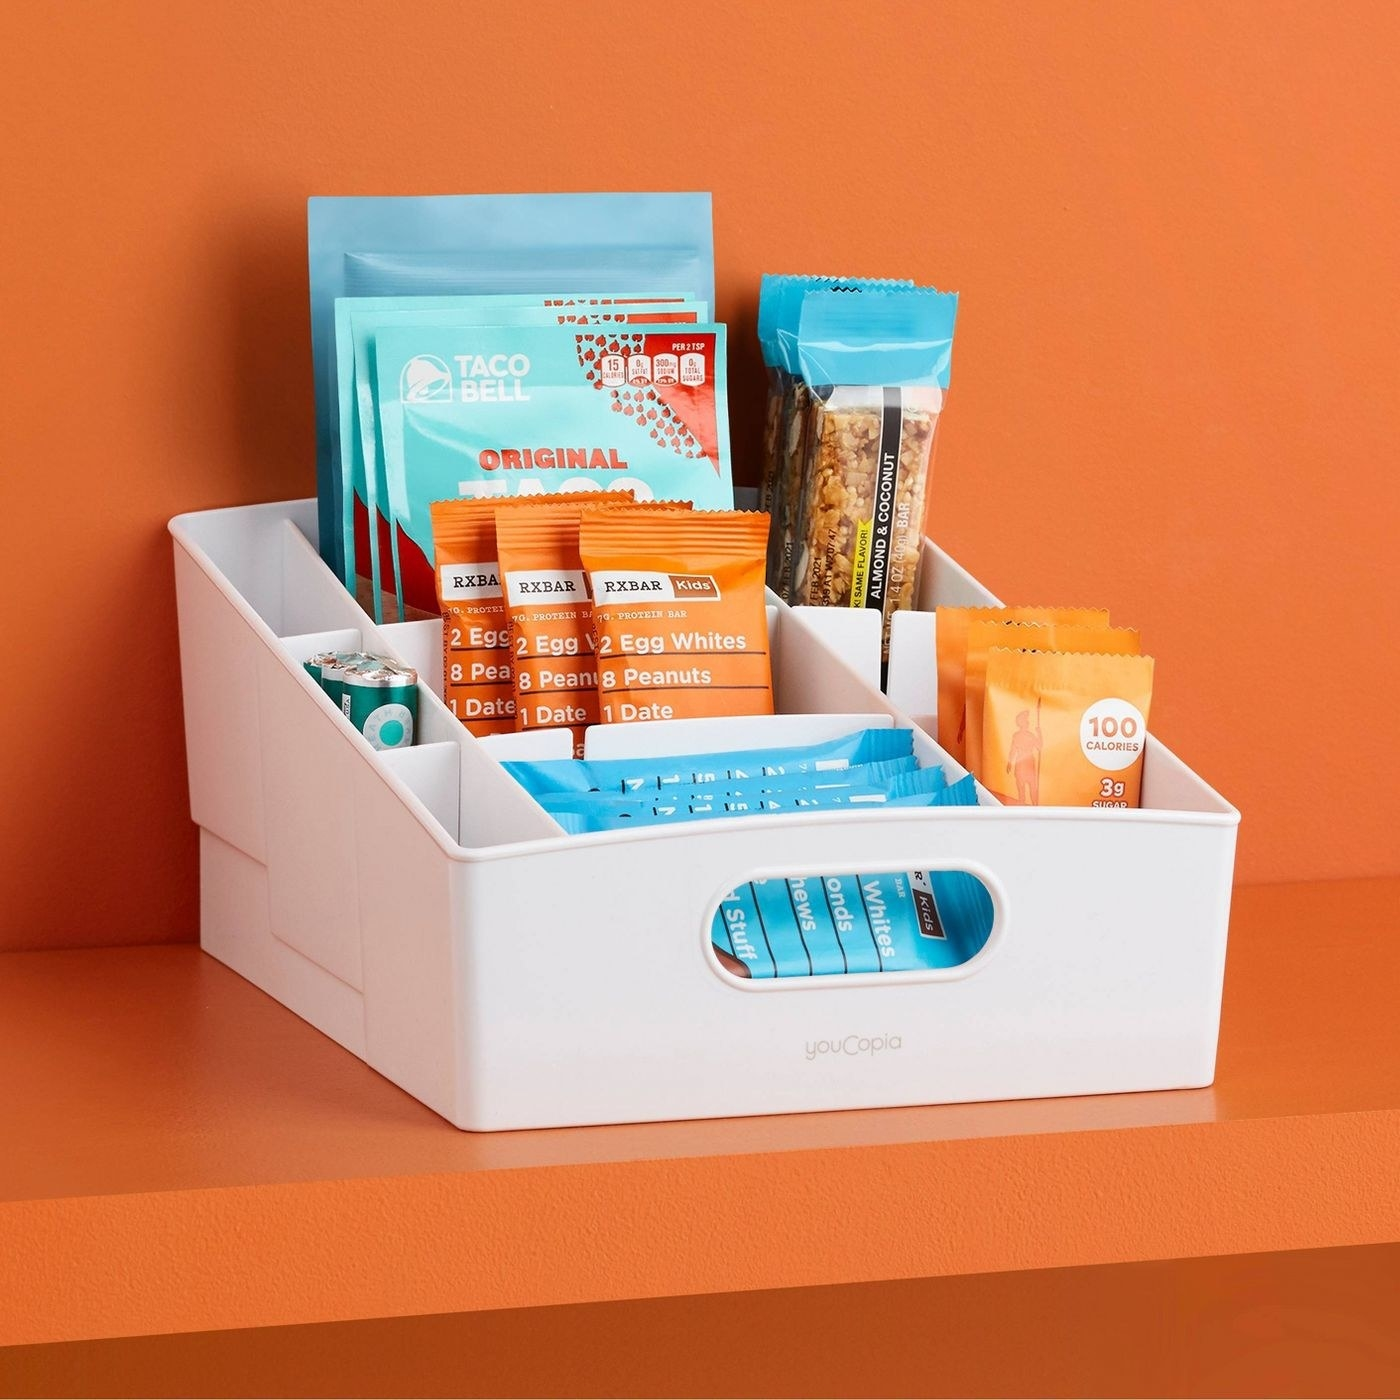 A snack sorter with items in it